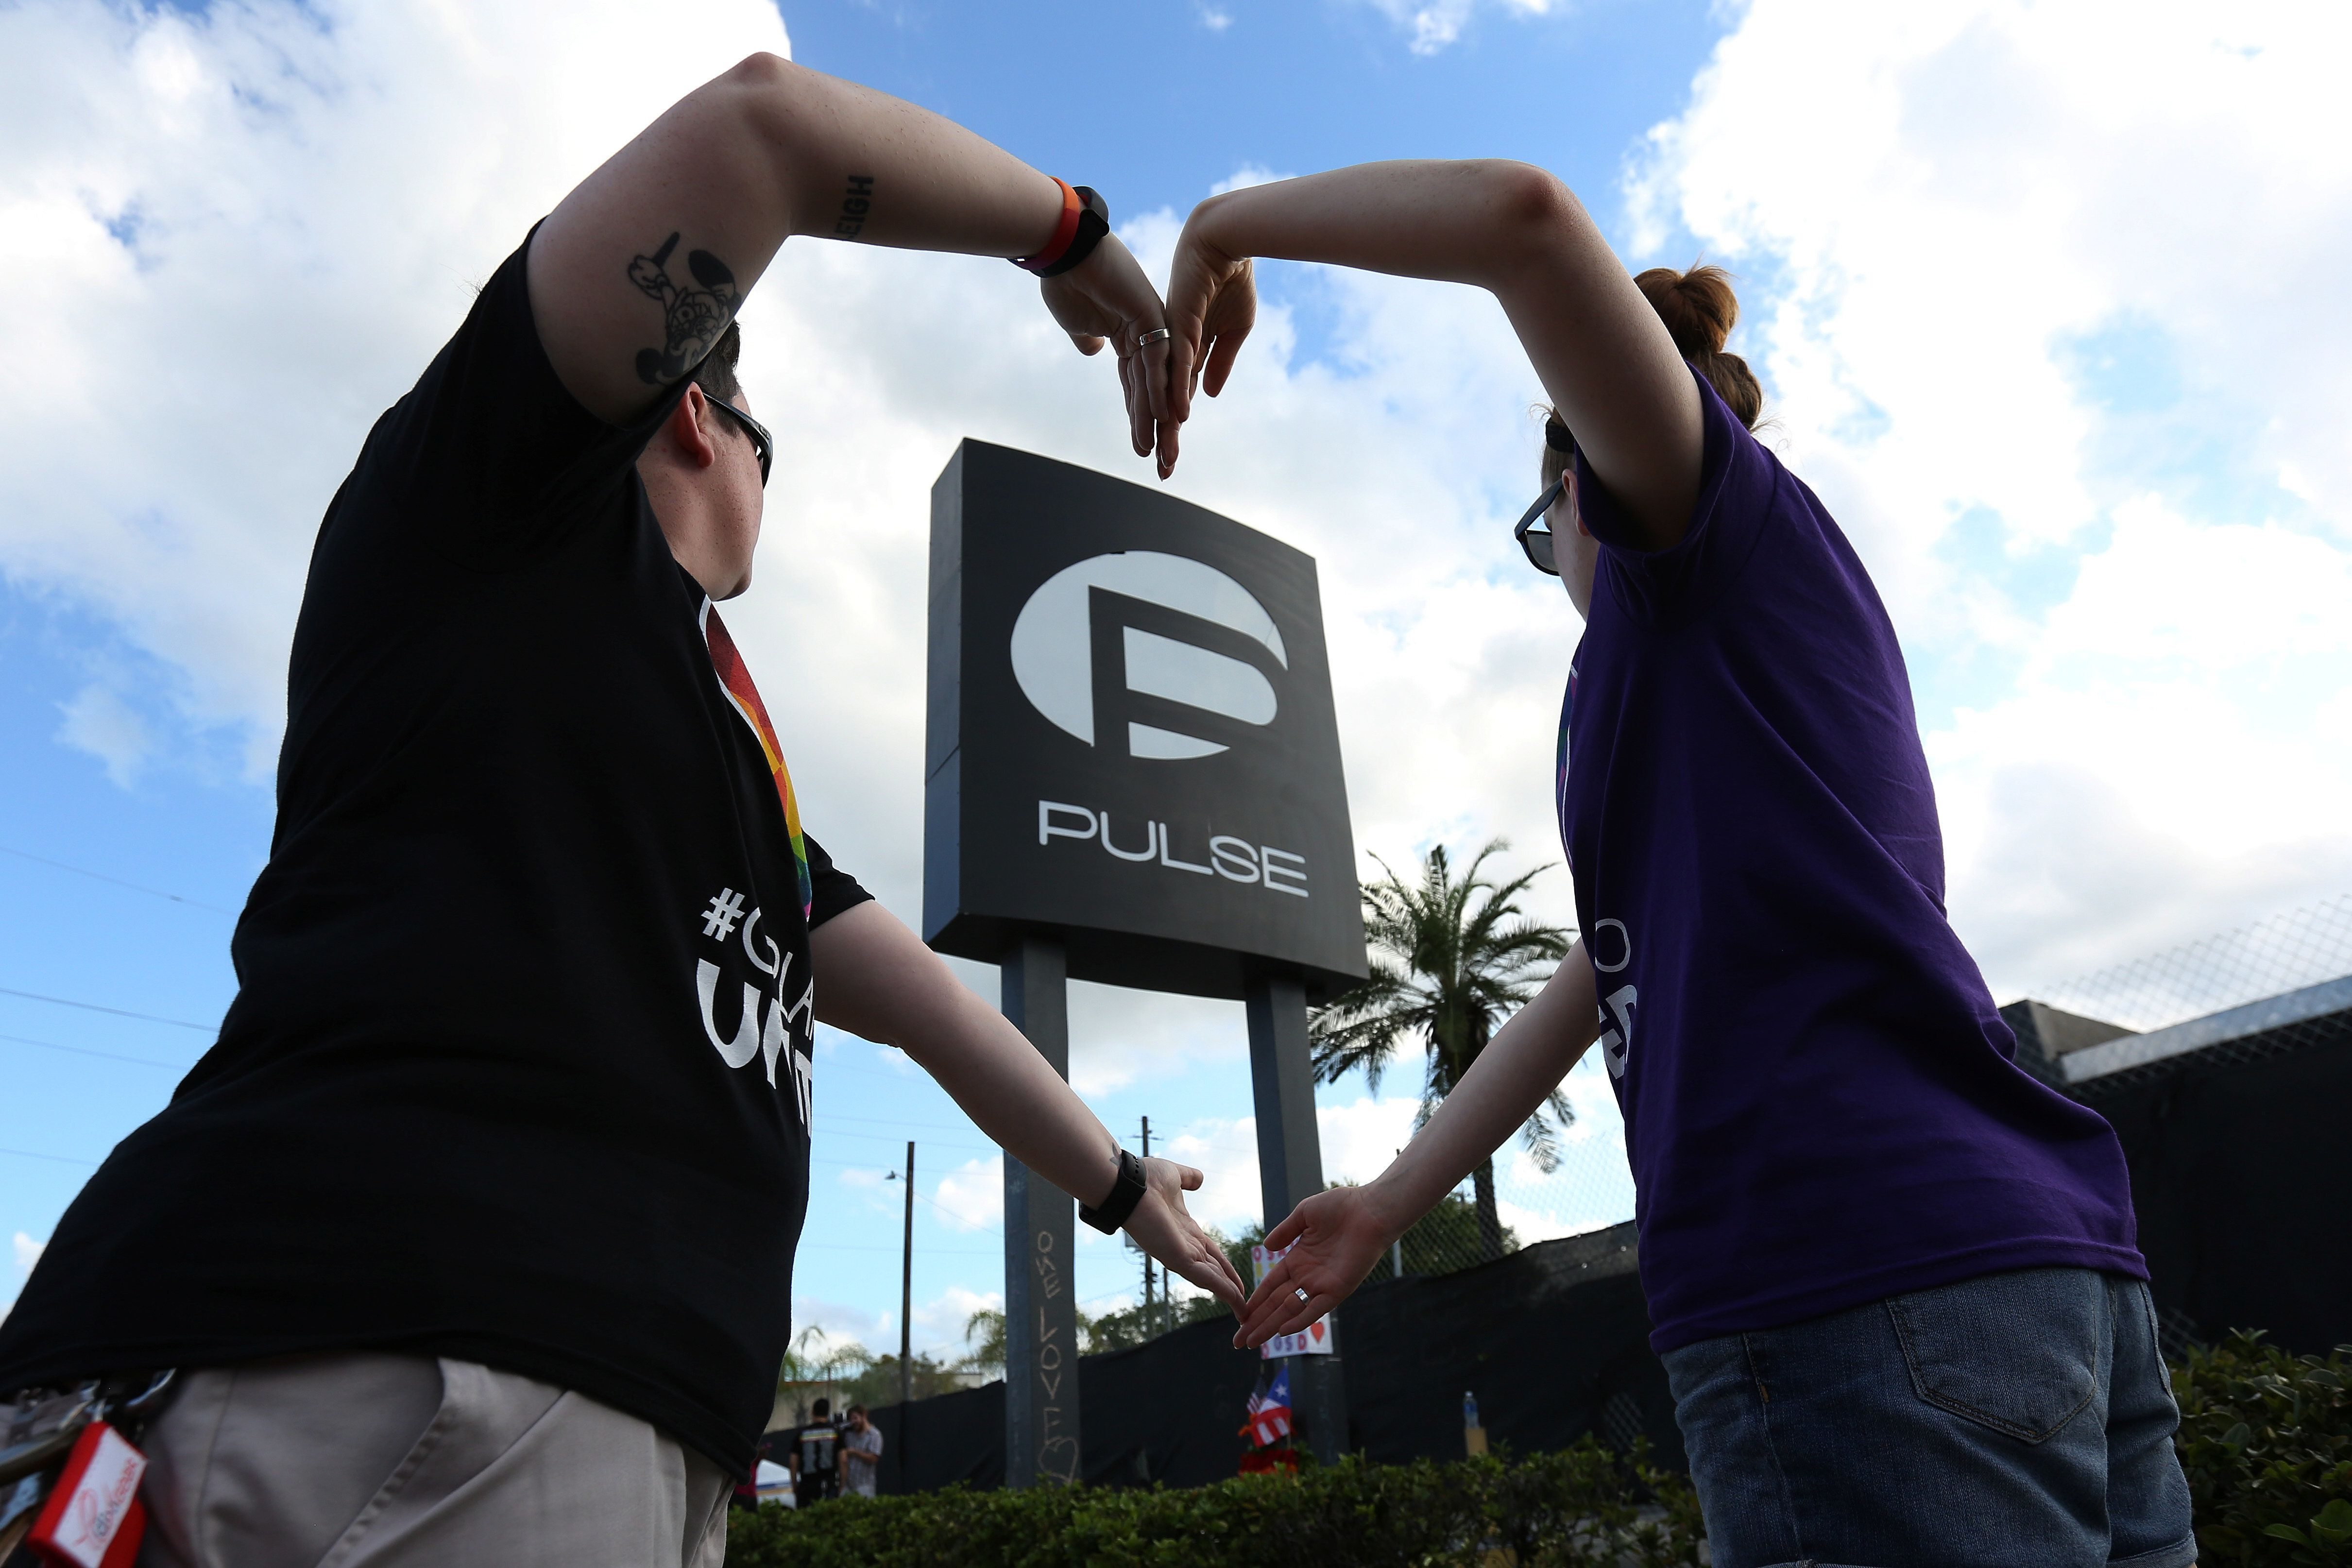 Heather Raleigh (L) and Paige Metelka make a heart shape as they pose during a photo shoot outside Pulse nightclub following the mass shooting last week in Orlando, Florida, U.S., June 21, 2016.  REUTERS/Carlo Allegri